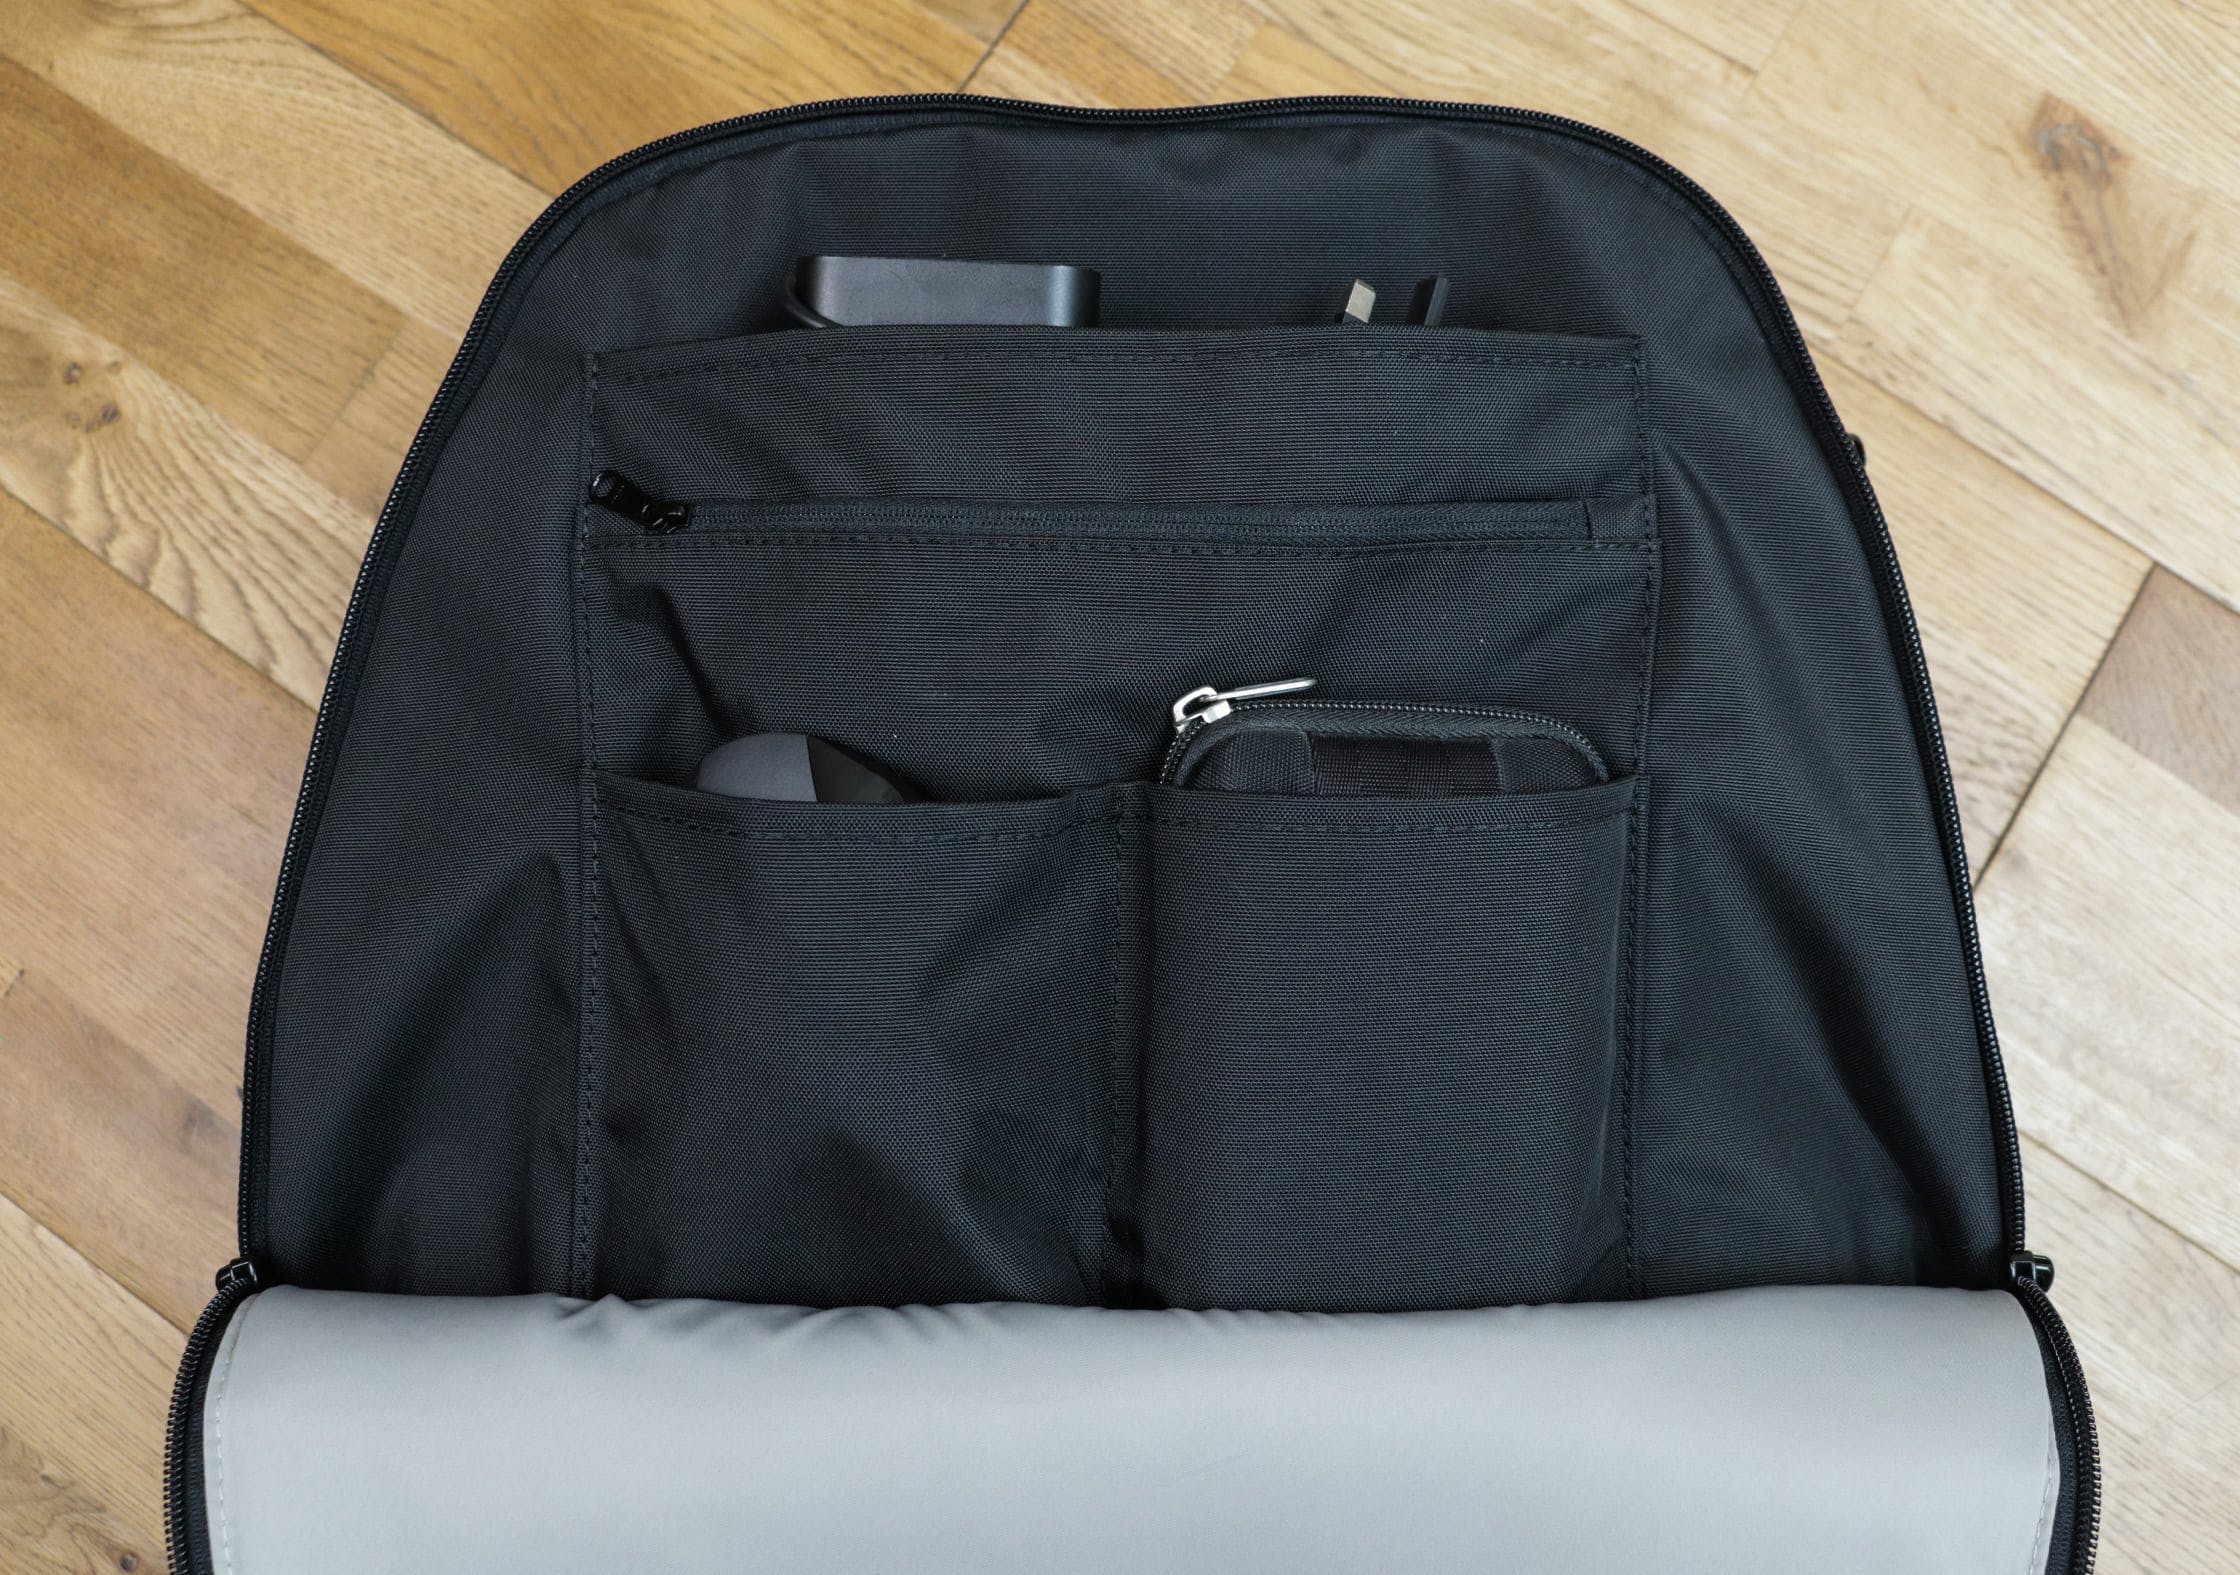 OPPOSETHIS Invisible Carry-On Front Compartment Organization System